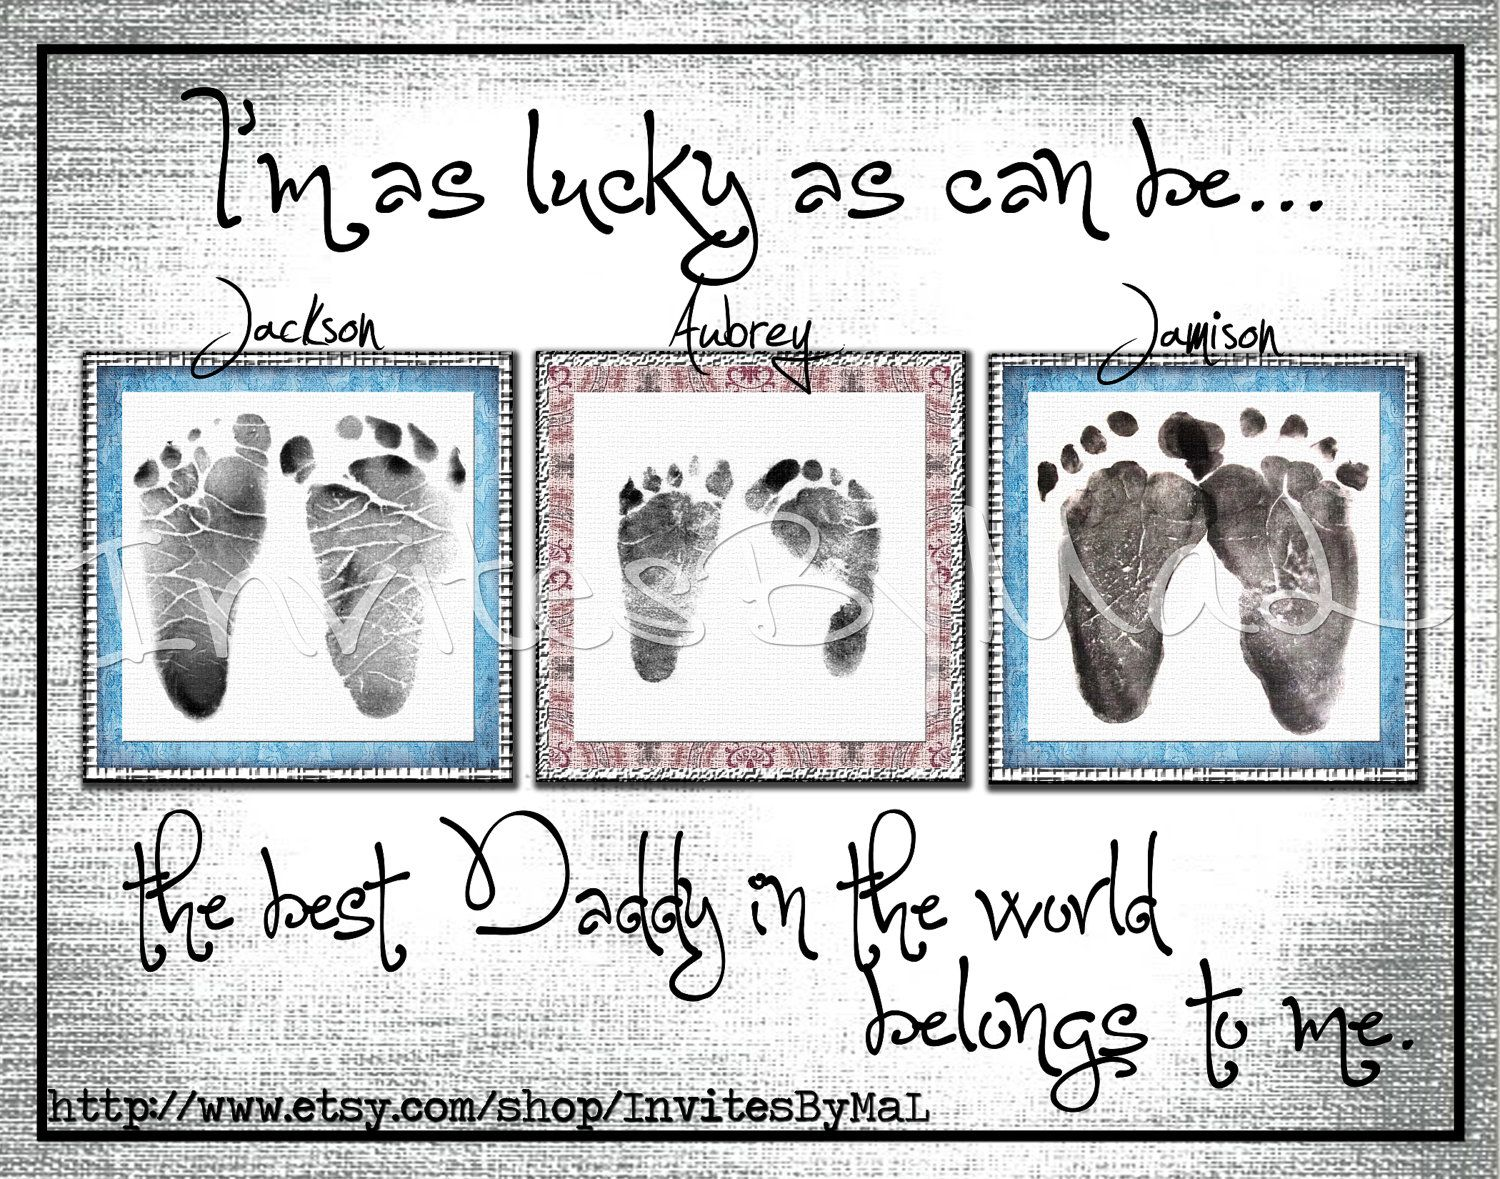 Personalized baby footprint or handprint keepsake gift perfect for